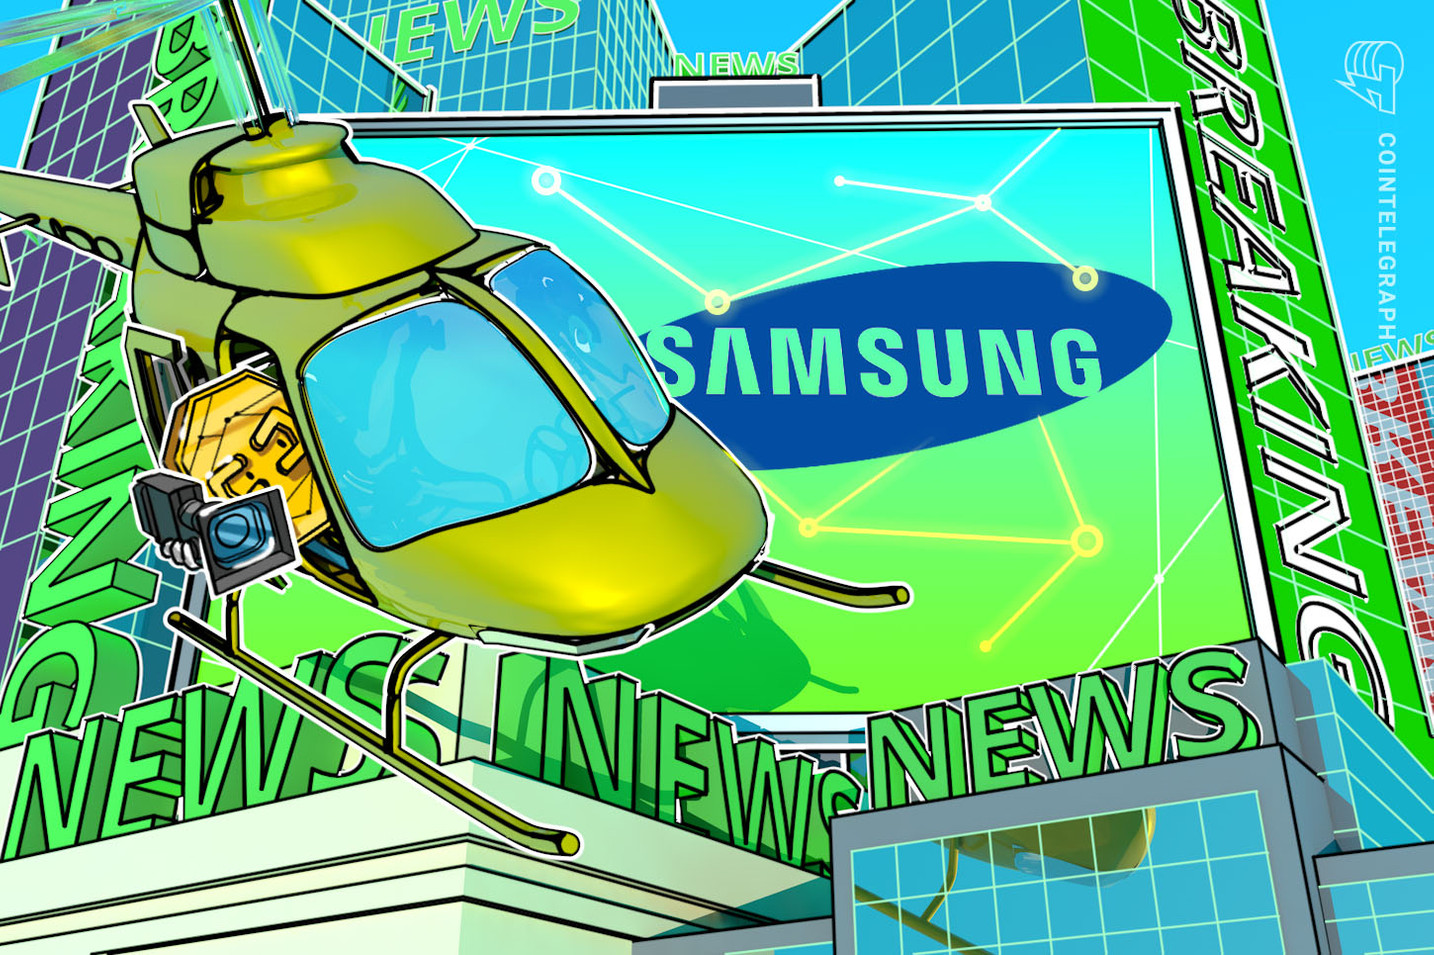 Report: Samsung Planning New Blockchain Mainnet Featuring Samsung Coin